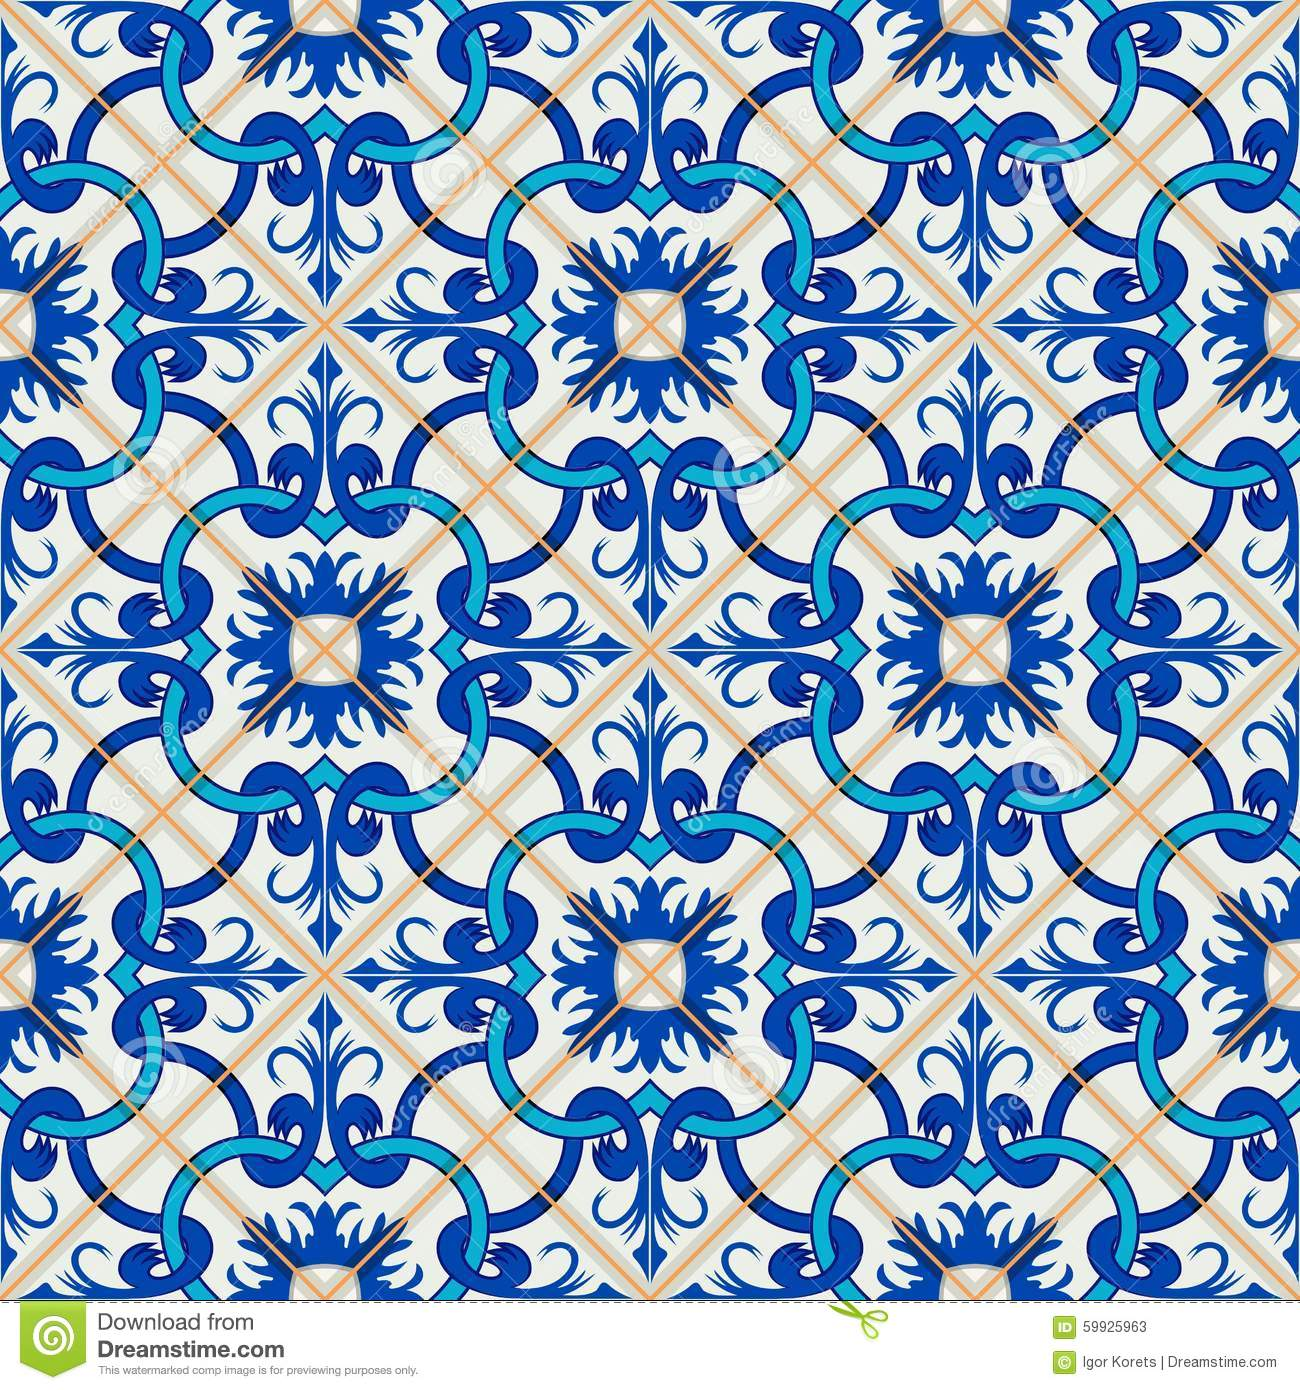 Patchwork Pattern From Dark Blue And White Moroccan Portuguese Tiles